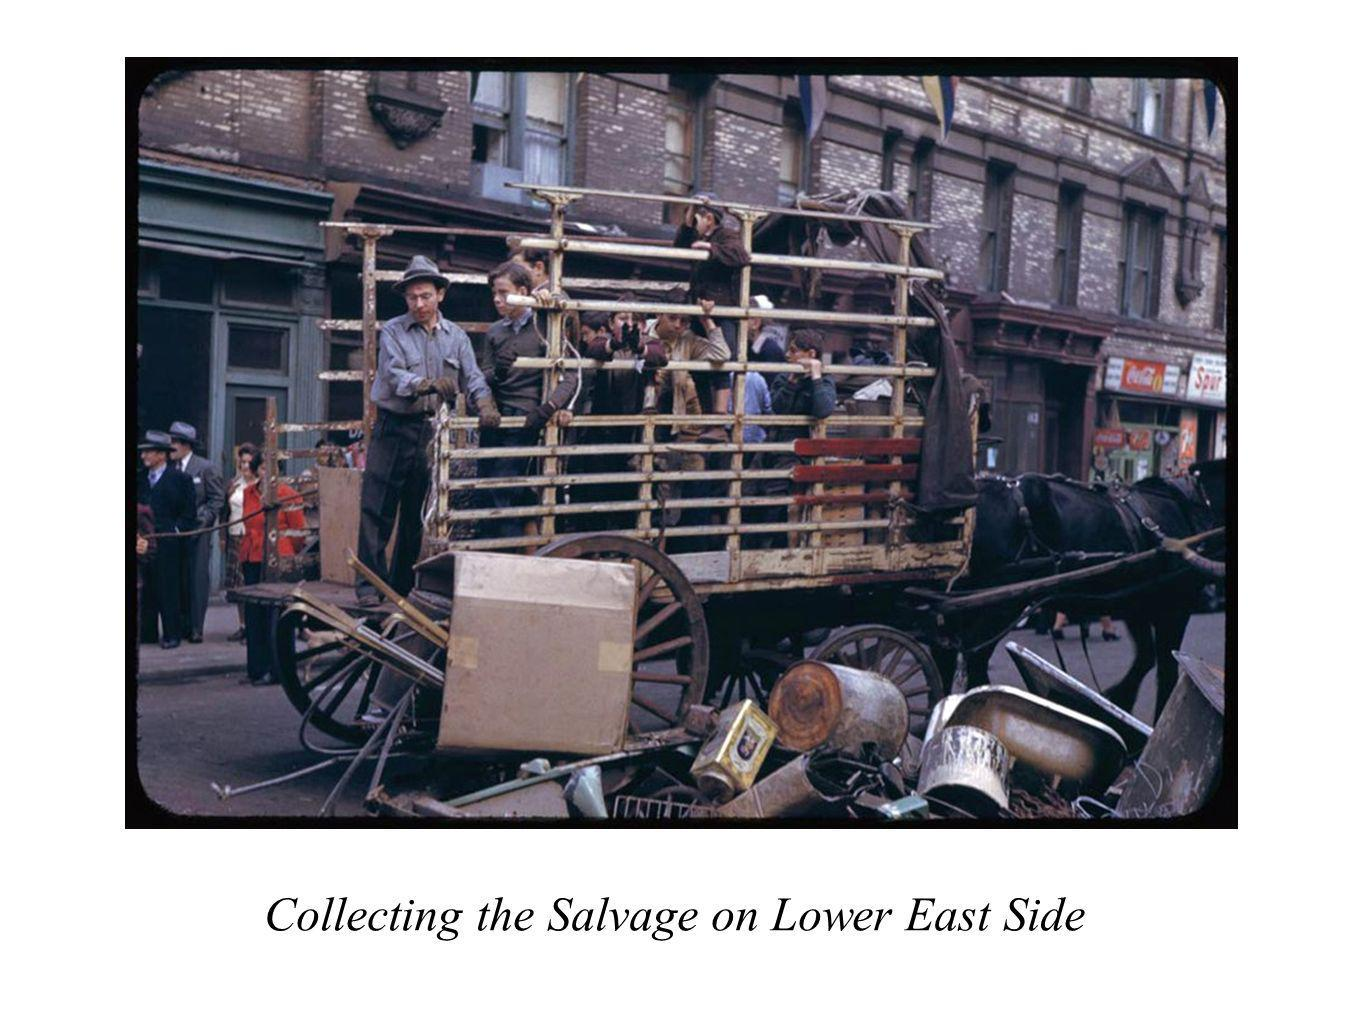 Collecting the Salvage on Lower East Side